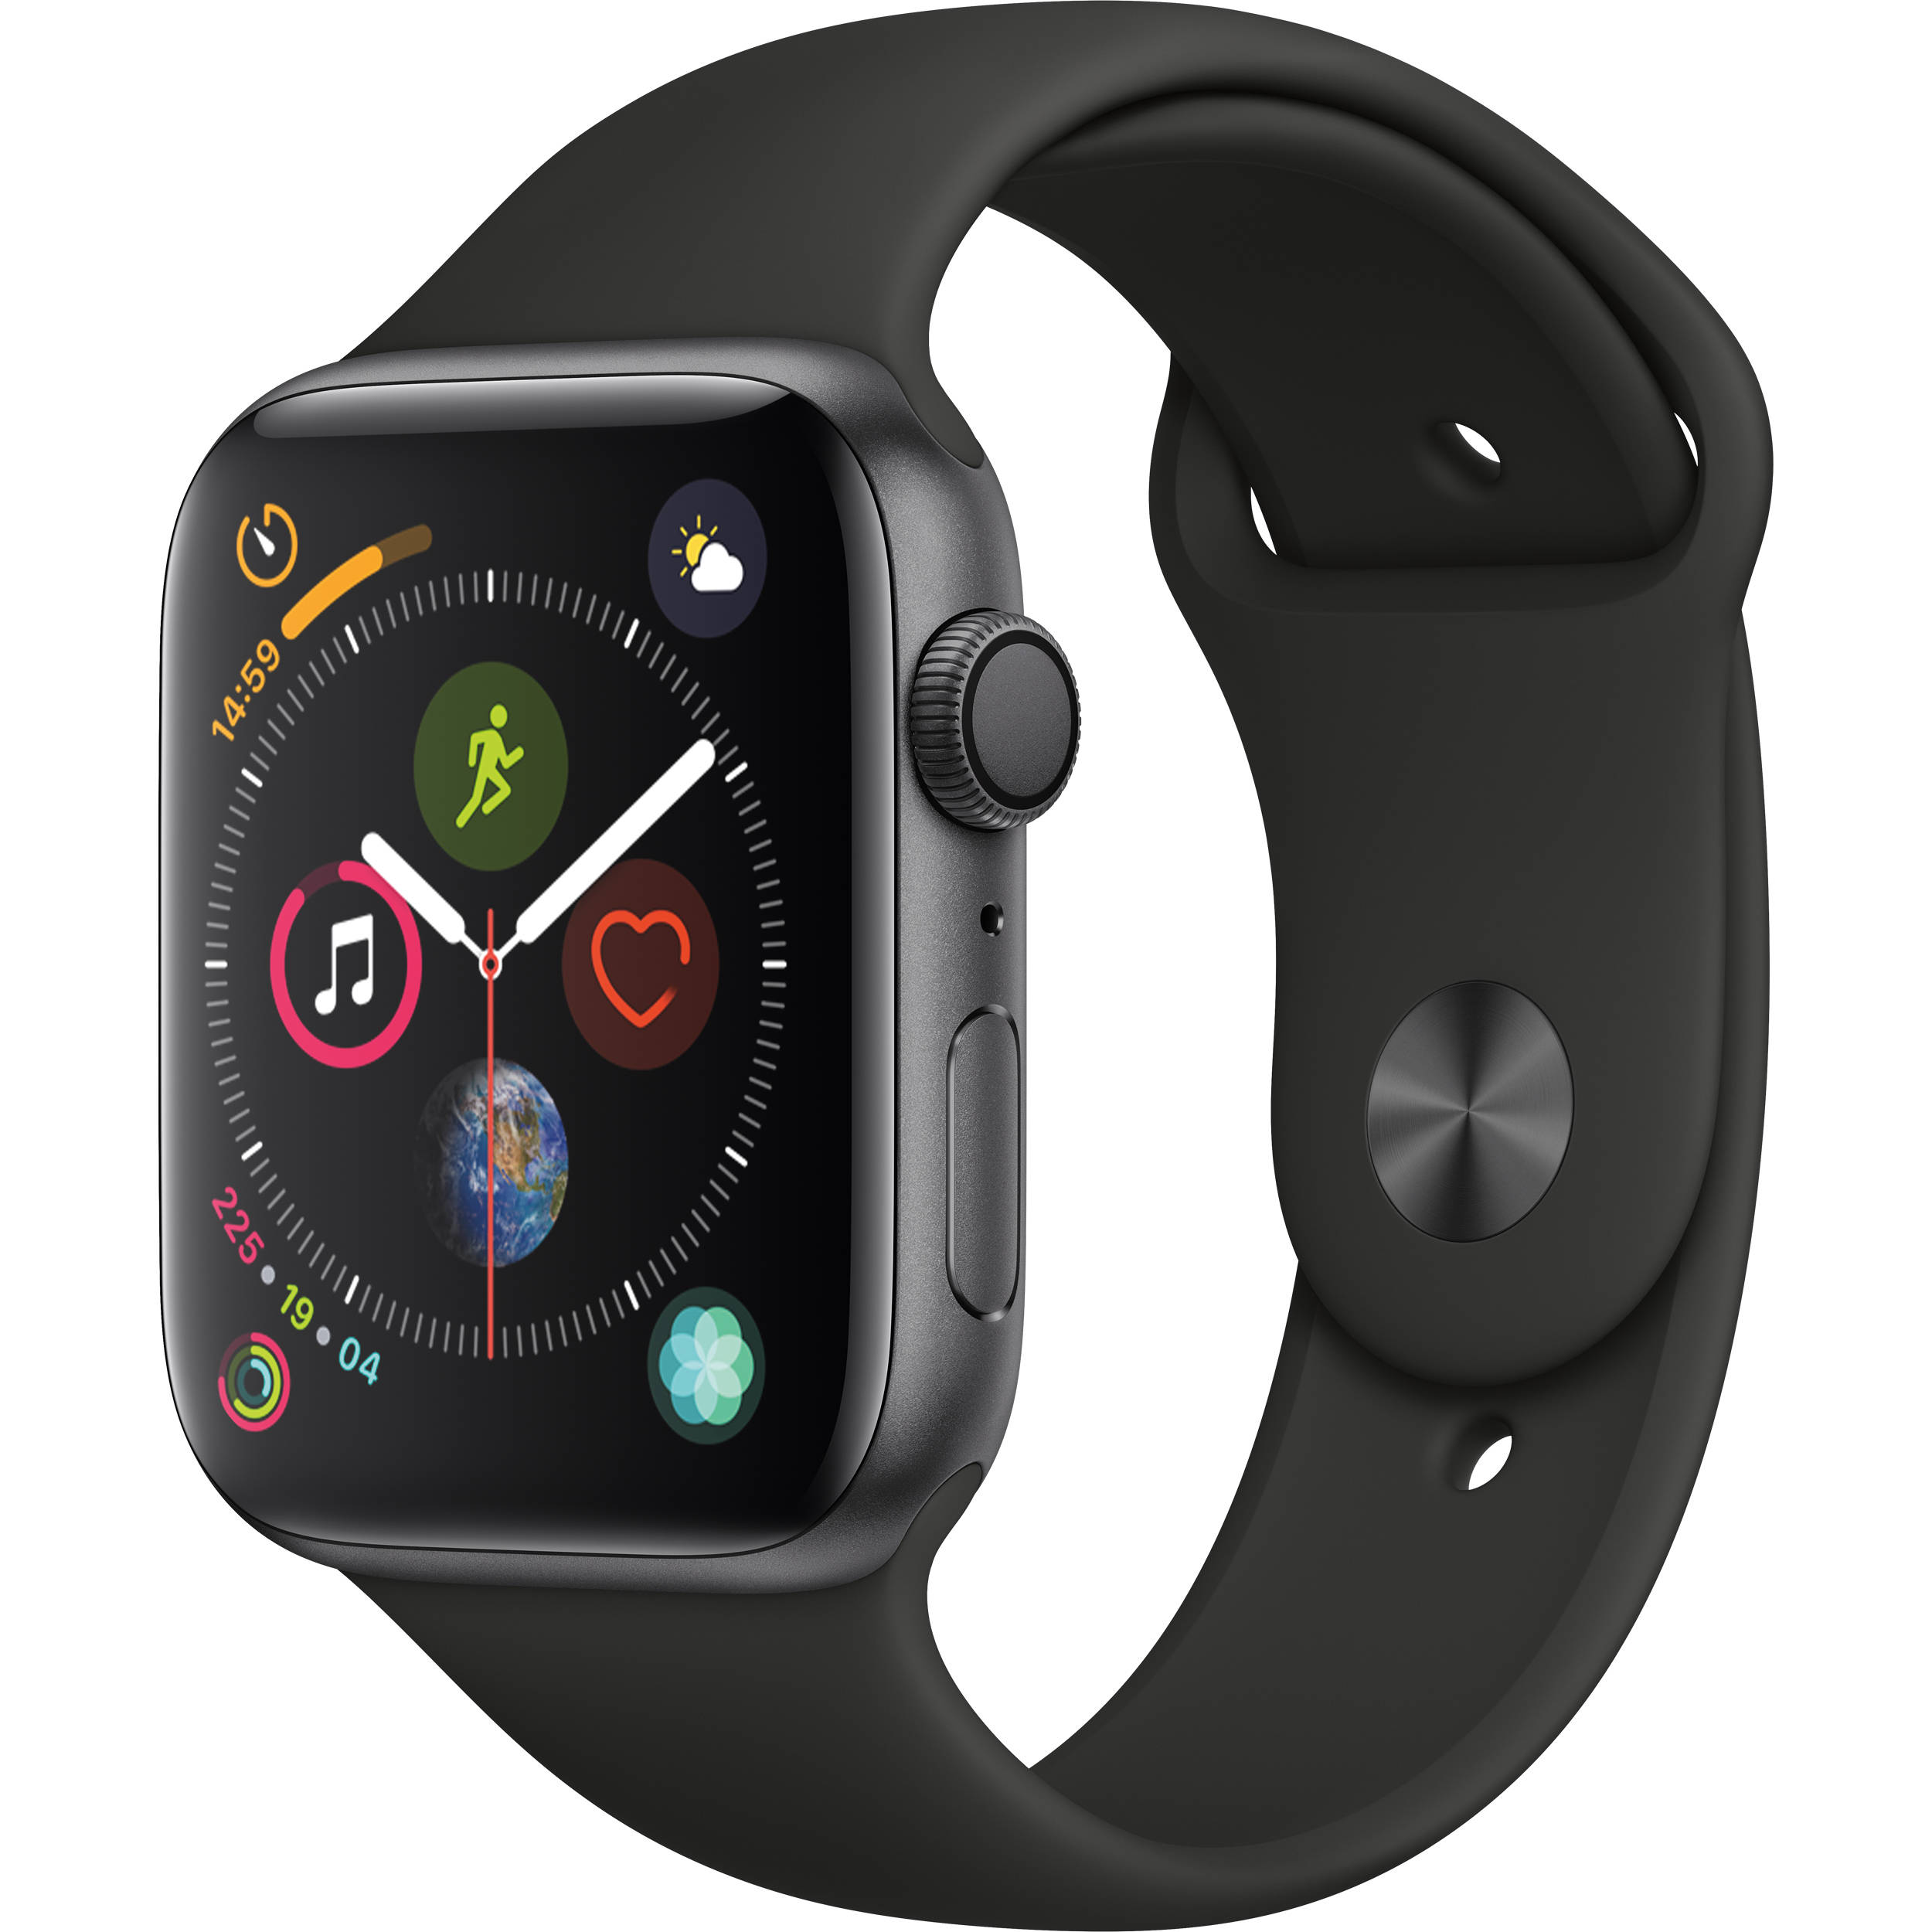 new collection detailed look 2018 sneakers Apple Watch Series 4 (GPS Only, 44mm, Space Gray Aluminum, Black Sport Band)